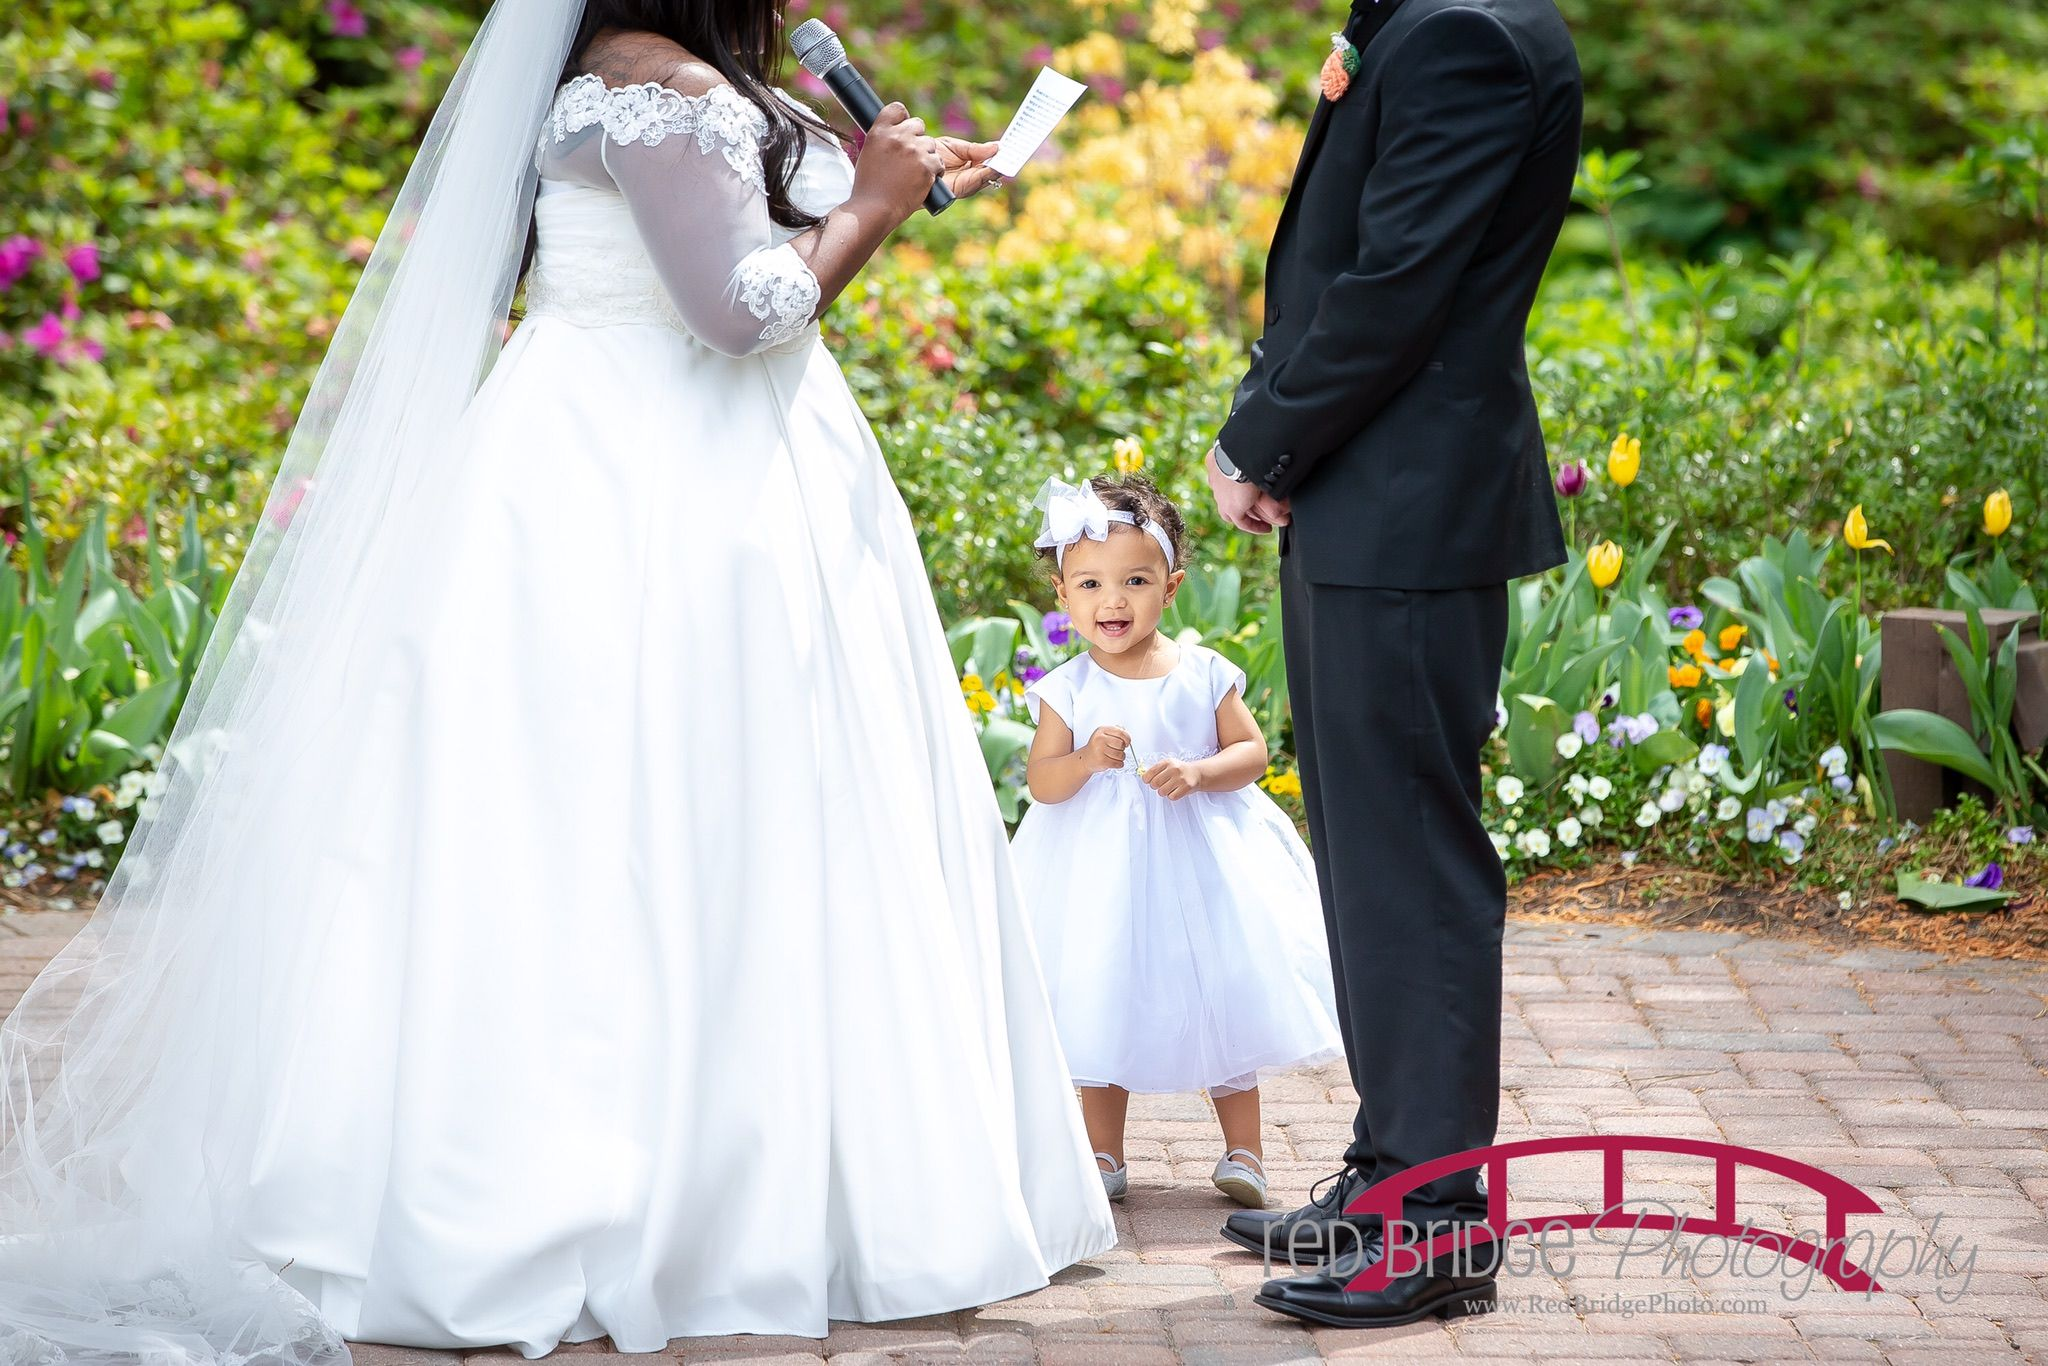 David bridal wedding dress  Davidus Bridal toddler flower girl Lil Kori photo bombing mom and